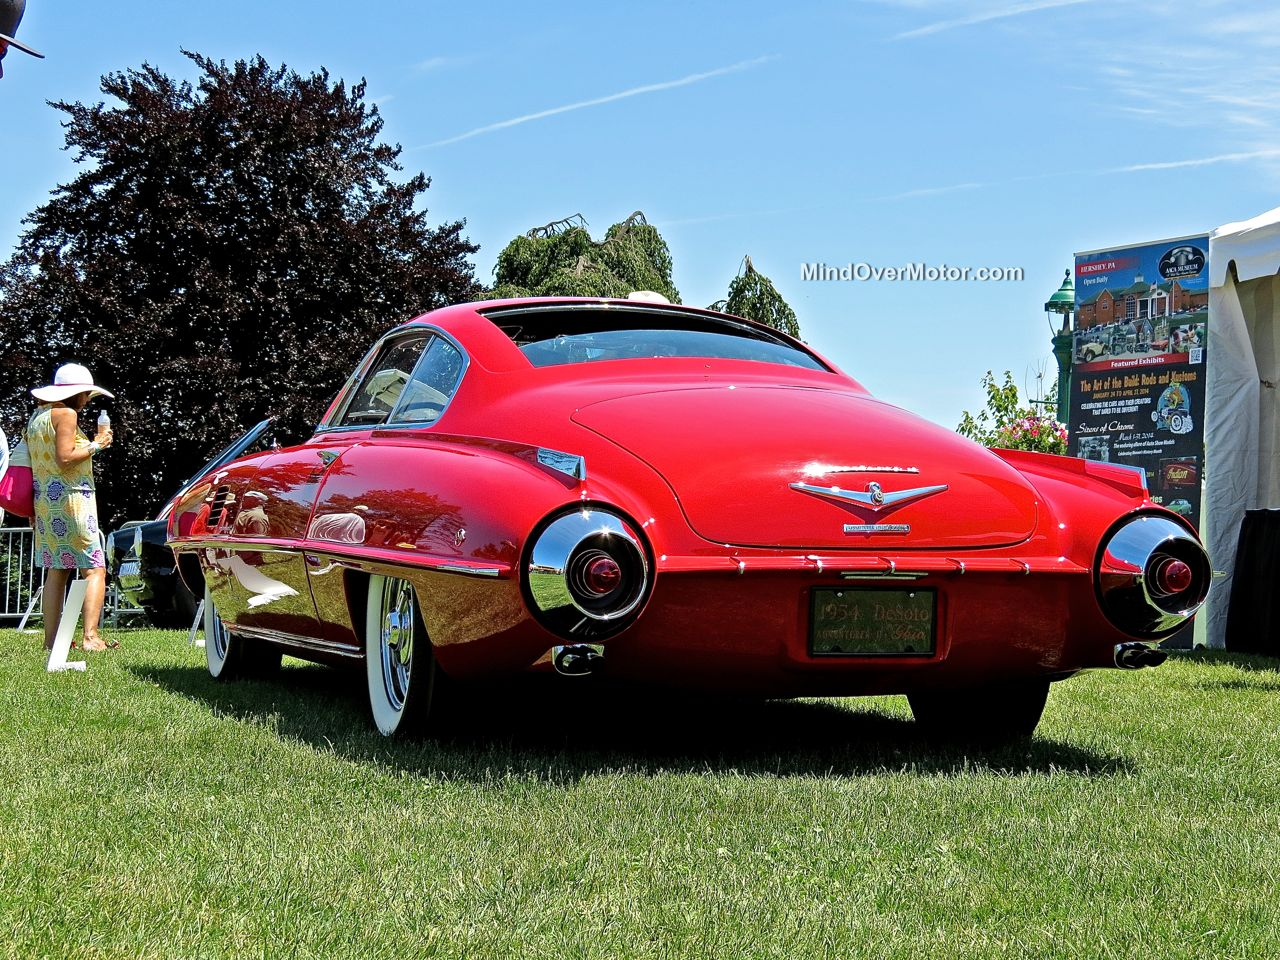 1954 Desoto Adventurer II Coupe at the Hershey Concours